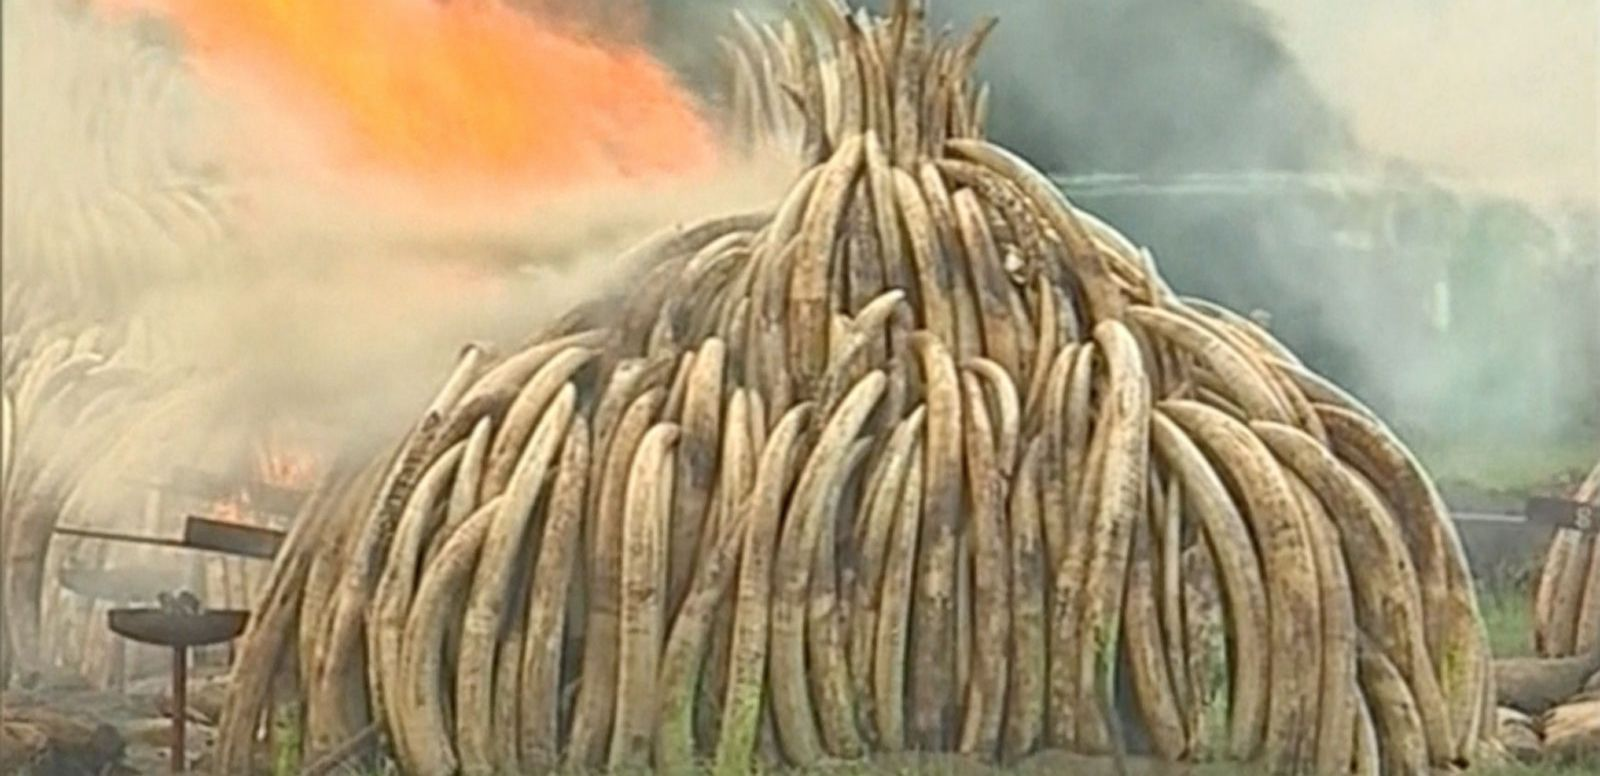 VIDEO: Kenya Protests Poaching by Burning Pile of Ivory